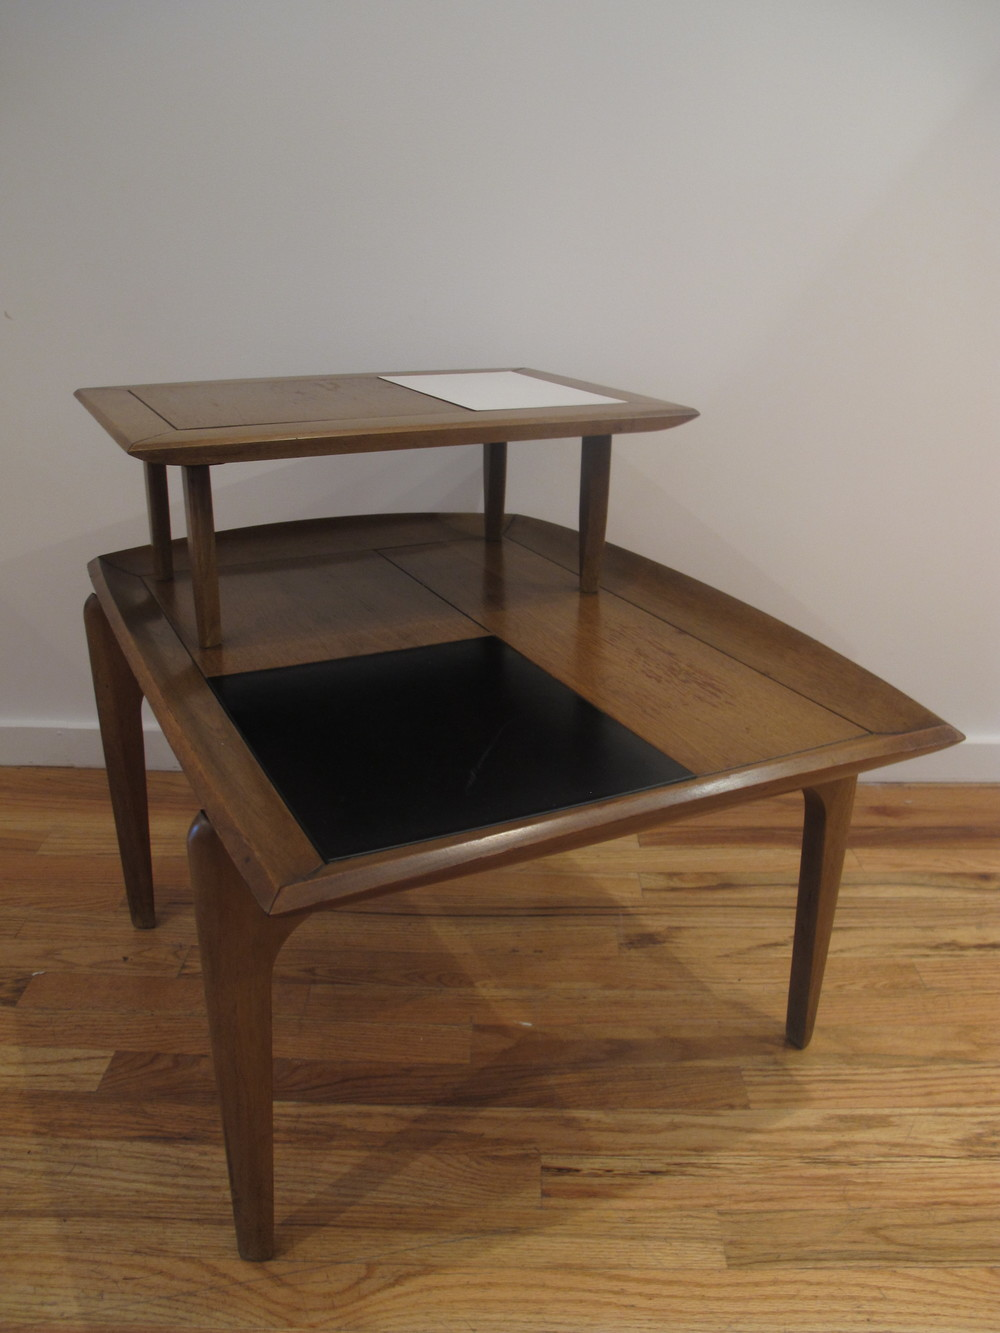 MID CENTURY TWO-TIER TILED END TABLE